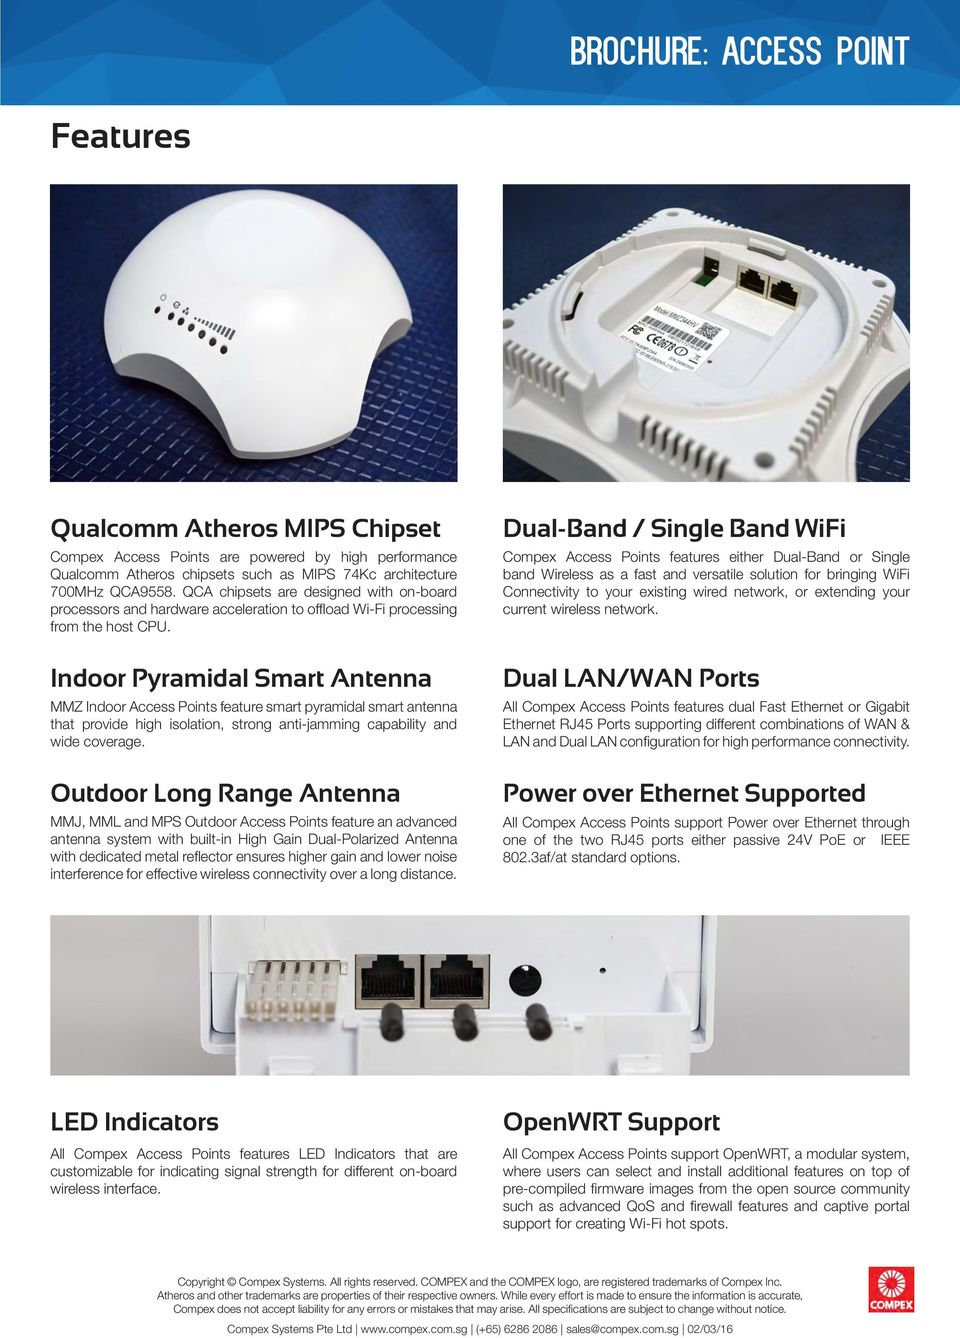 Indoor Pyramidal Smart Antenna MMZ Indoor Access Points feature smart pyramidal smart that provide high isolation, strong anti-jamming capability and wide coverage.